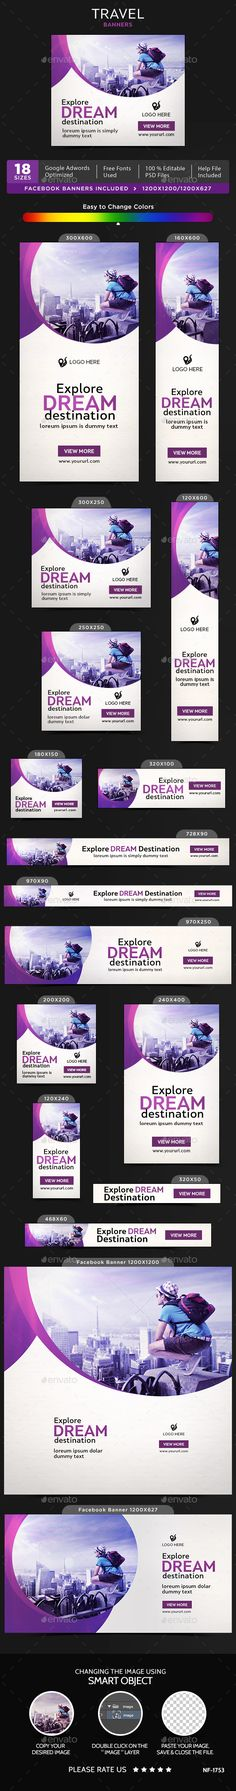 Travel Banners - Banners & Ads Web Elements Download here : https://graphicriver.net/item/travel-banners/19770442?s_rank=130&ref=Al-fatih